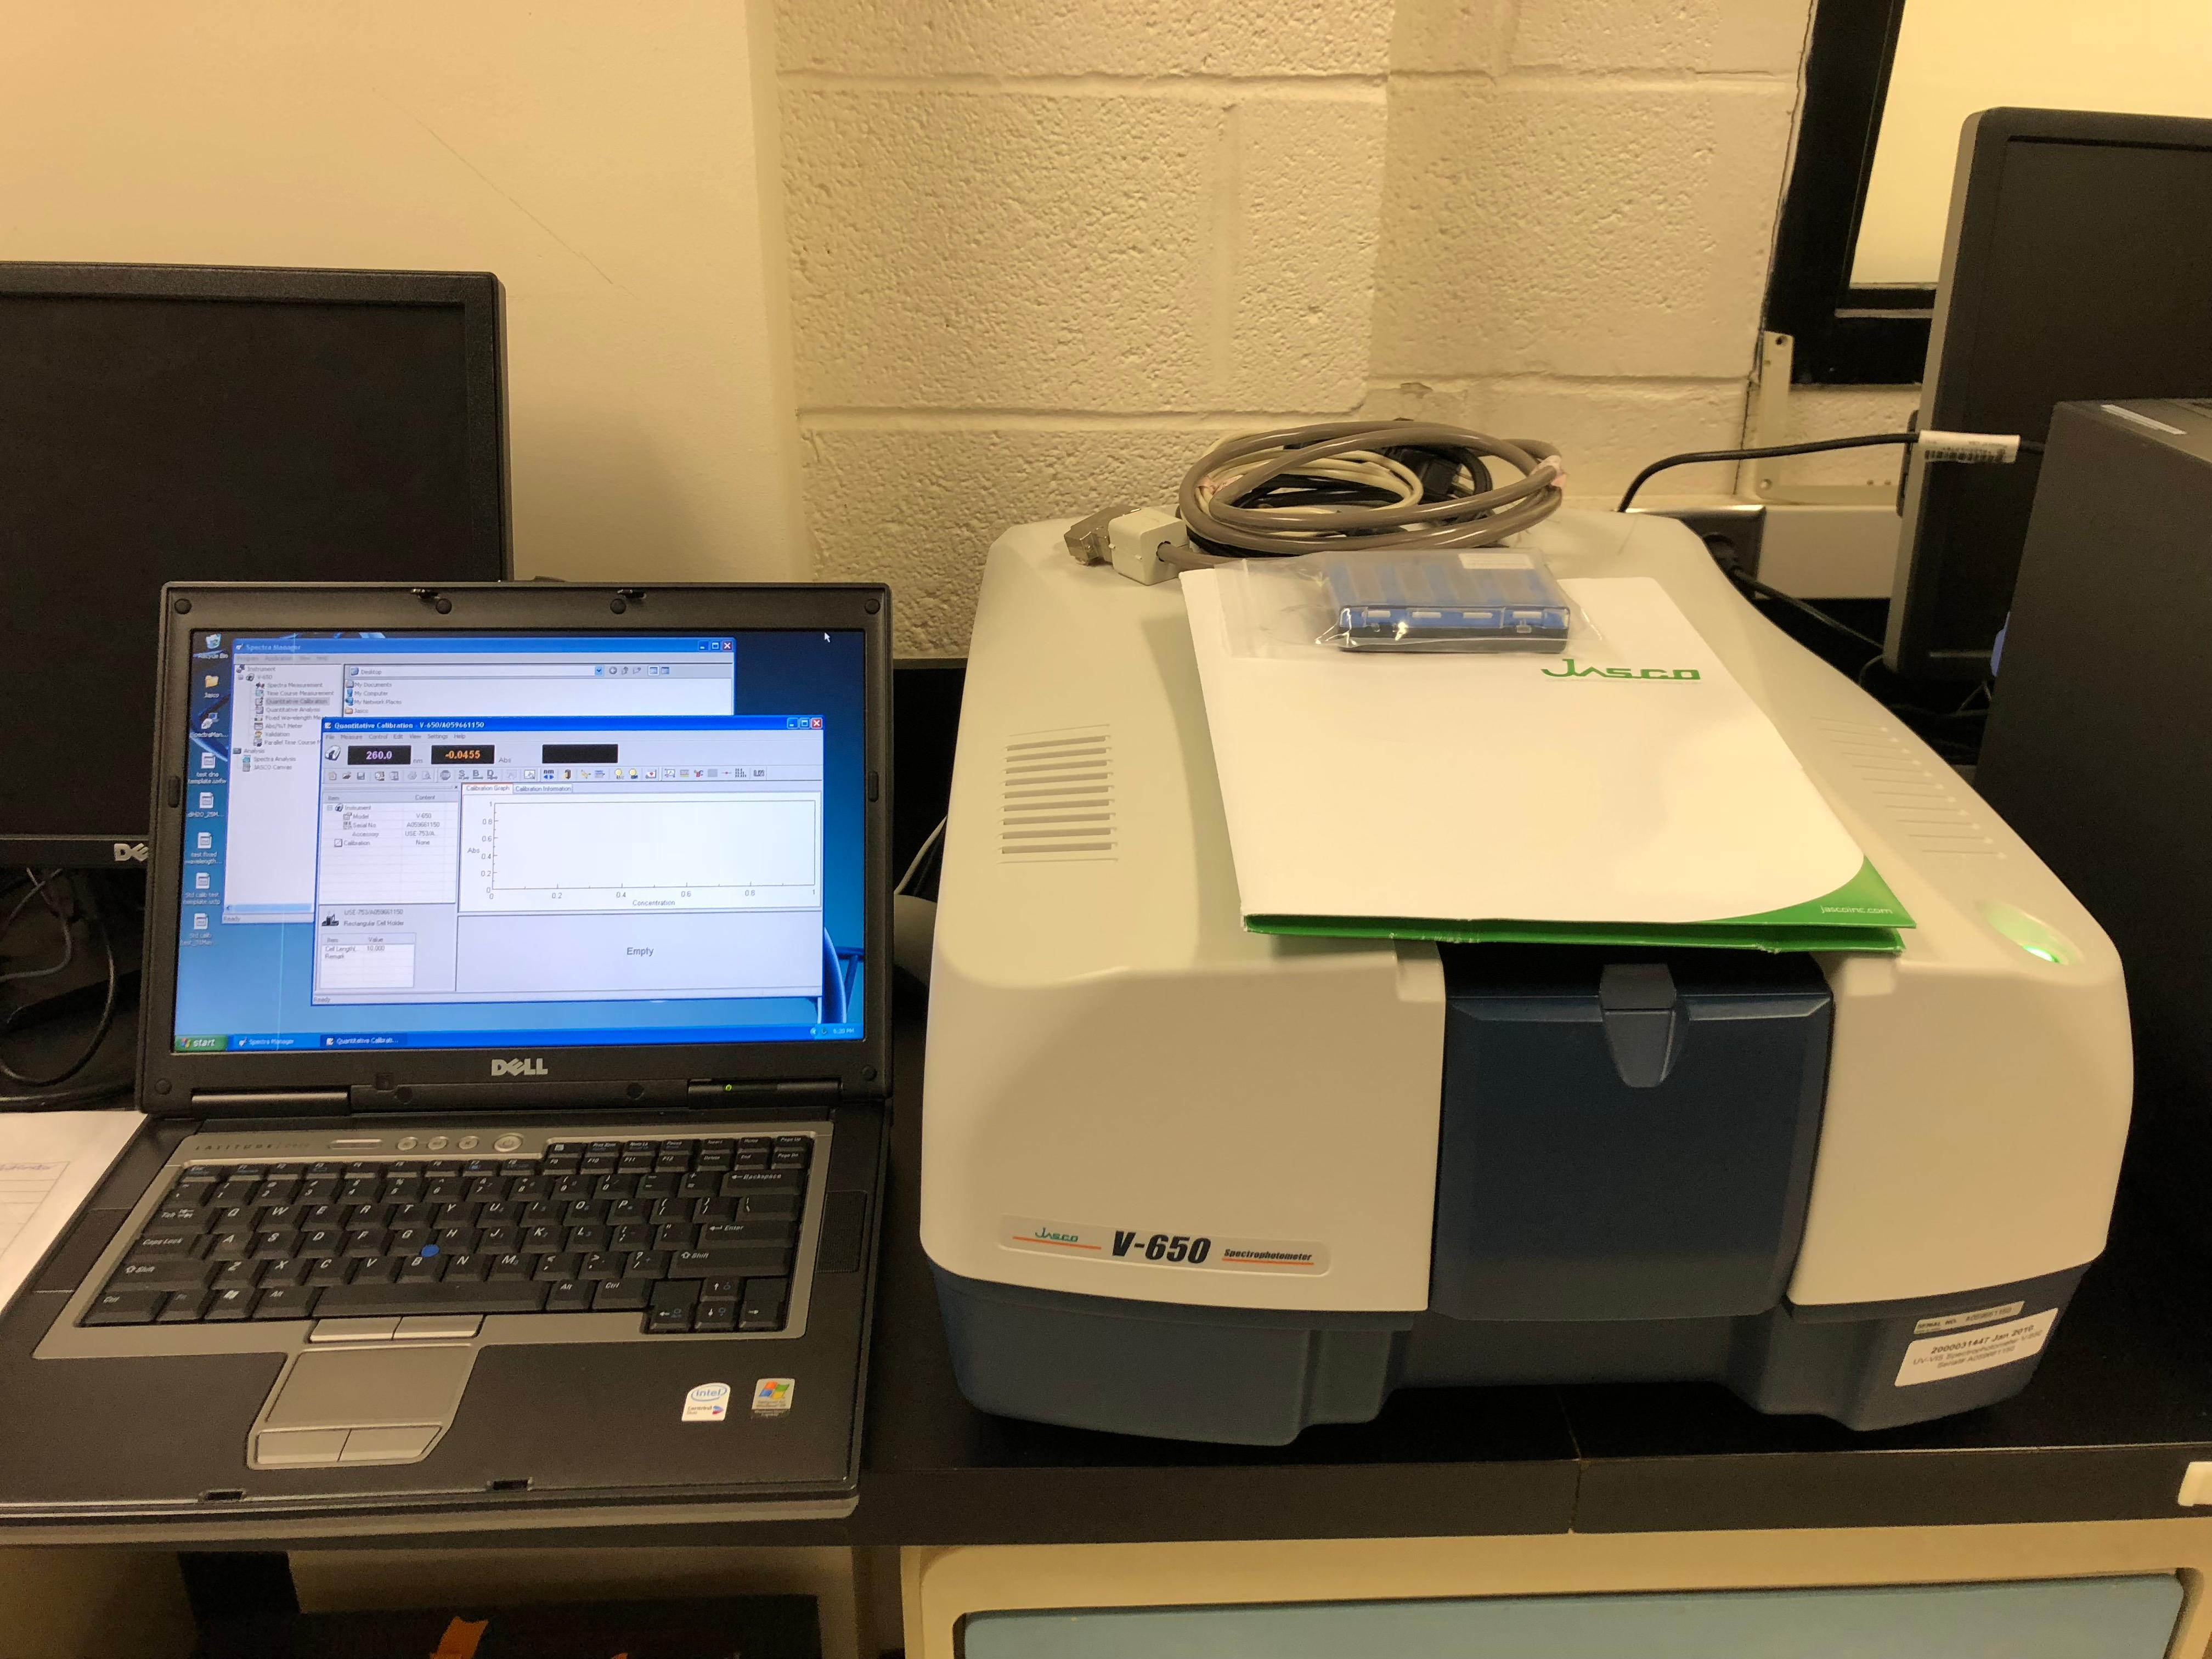 Jasco V-650 Spectrophotometer-New Performance Service and Calibrated!